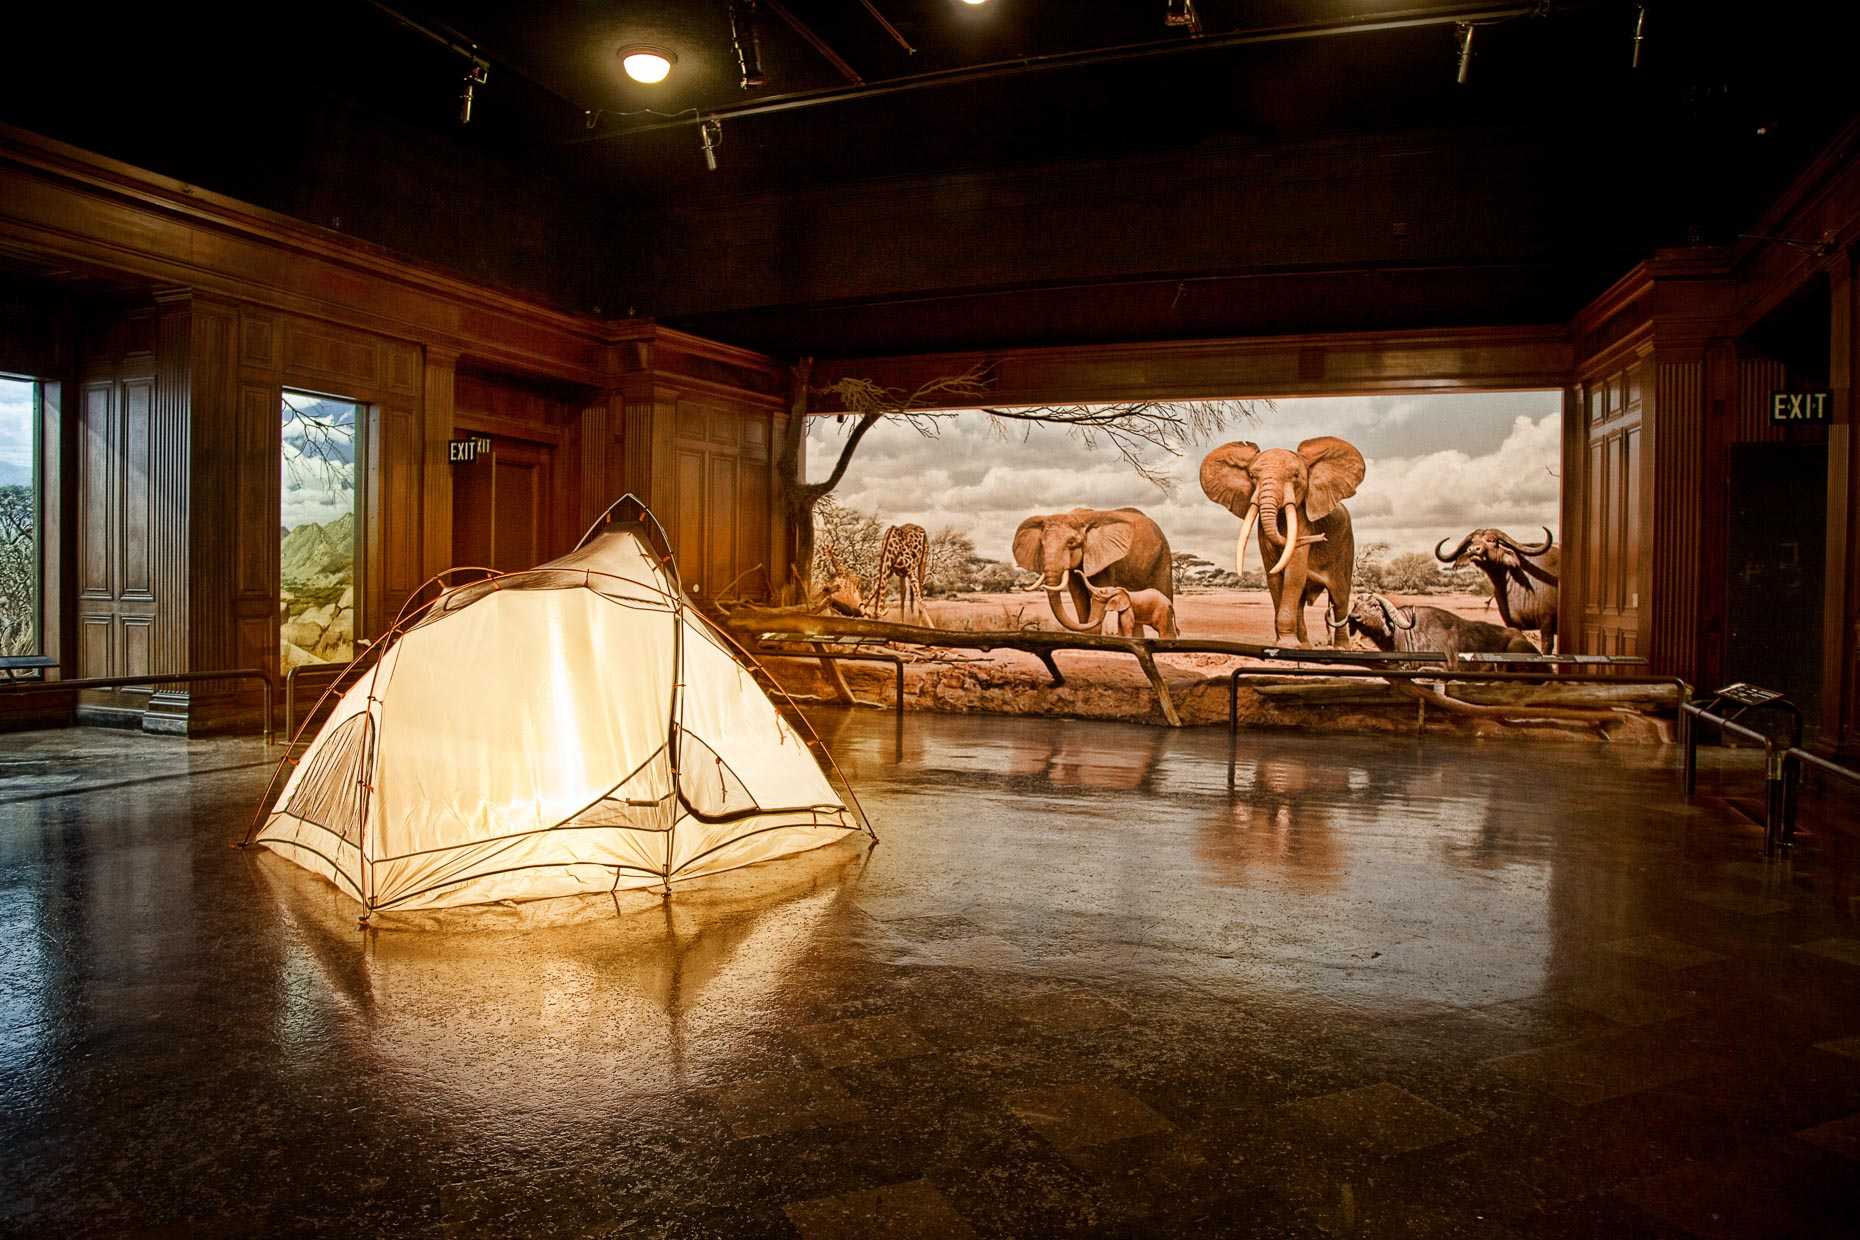 Camping tent in diorama room of Los Angeles County Nautral History Musuem.  Diorama includes elephants and giraffe.